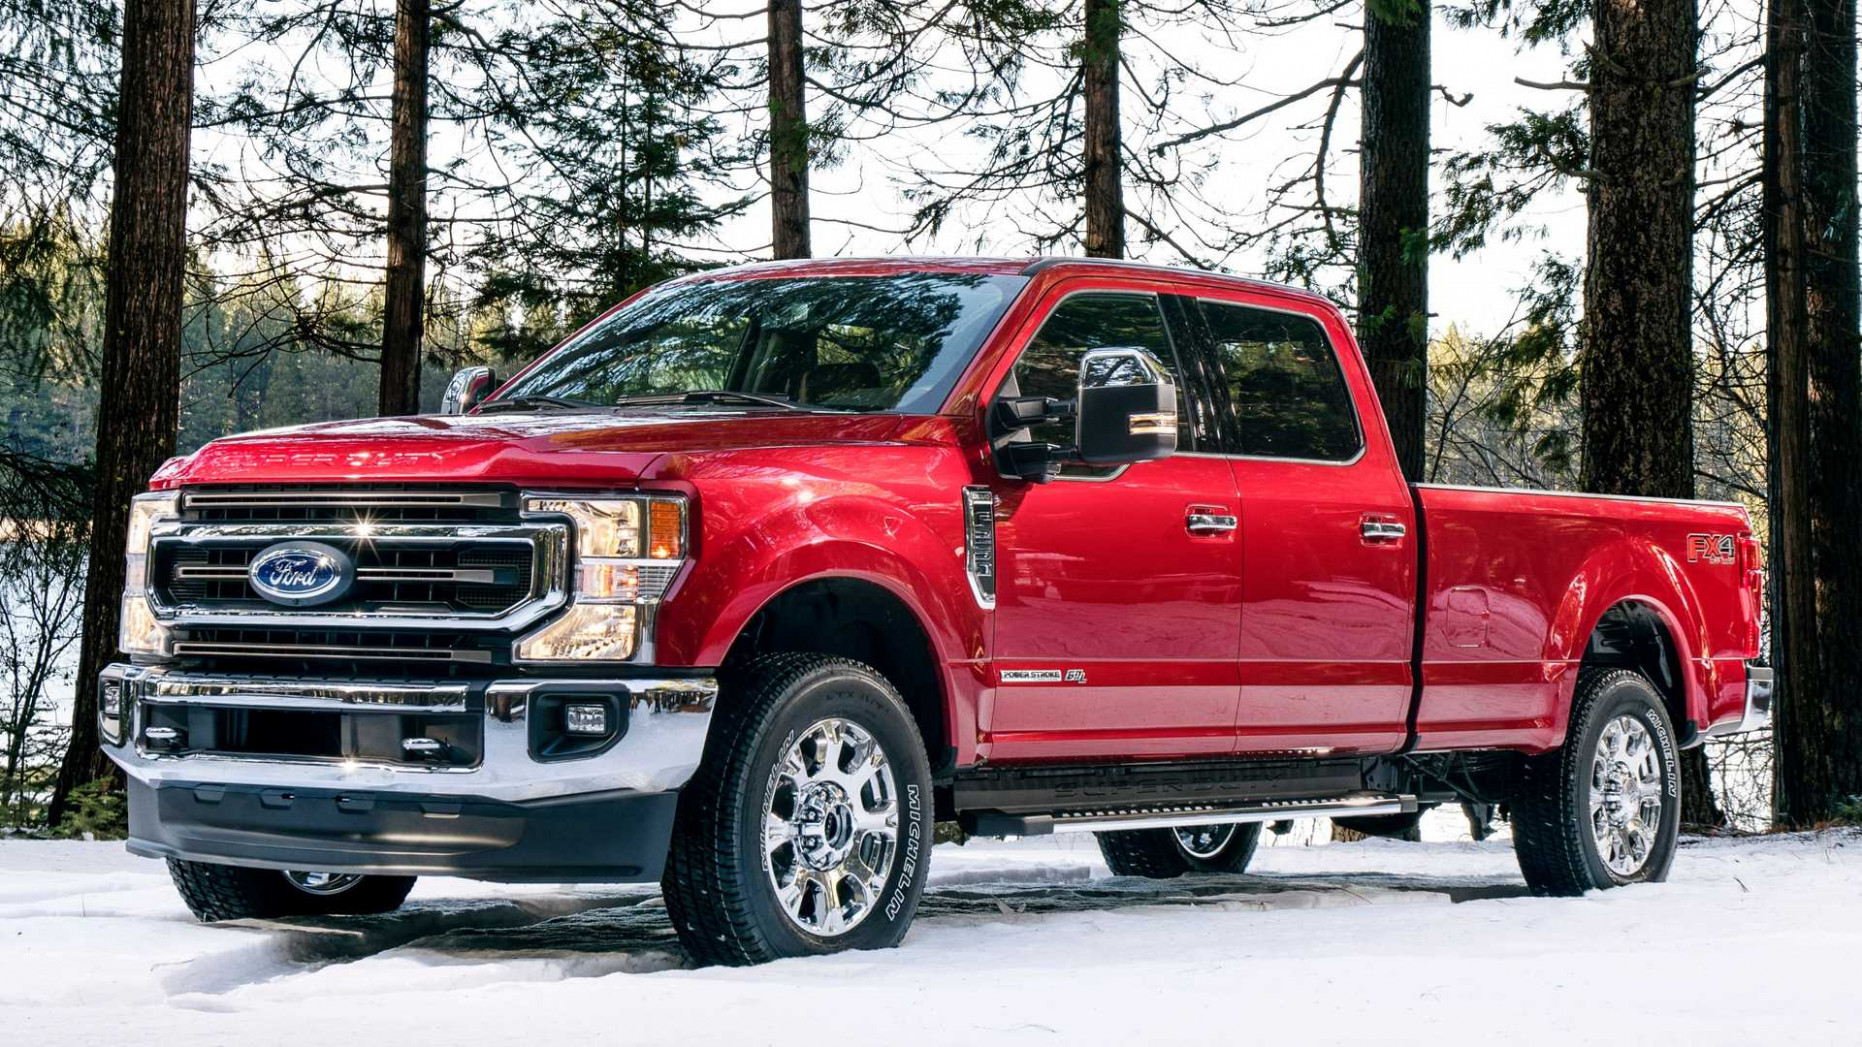 6 Ford Super Duty's New 6.6-liter V6 Detailed, Up To 460 HP